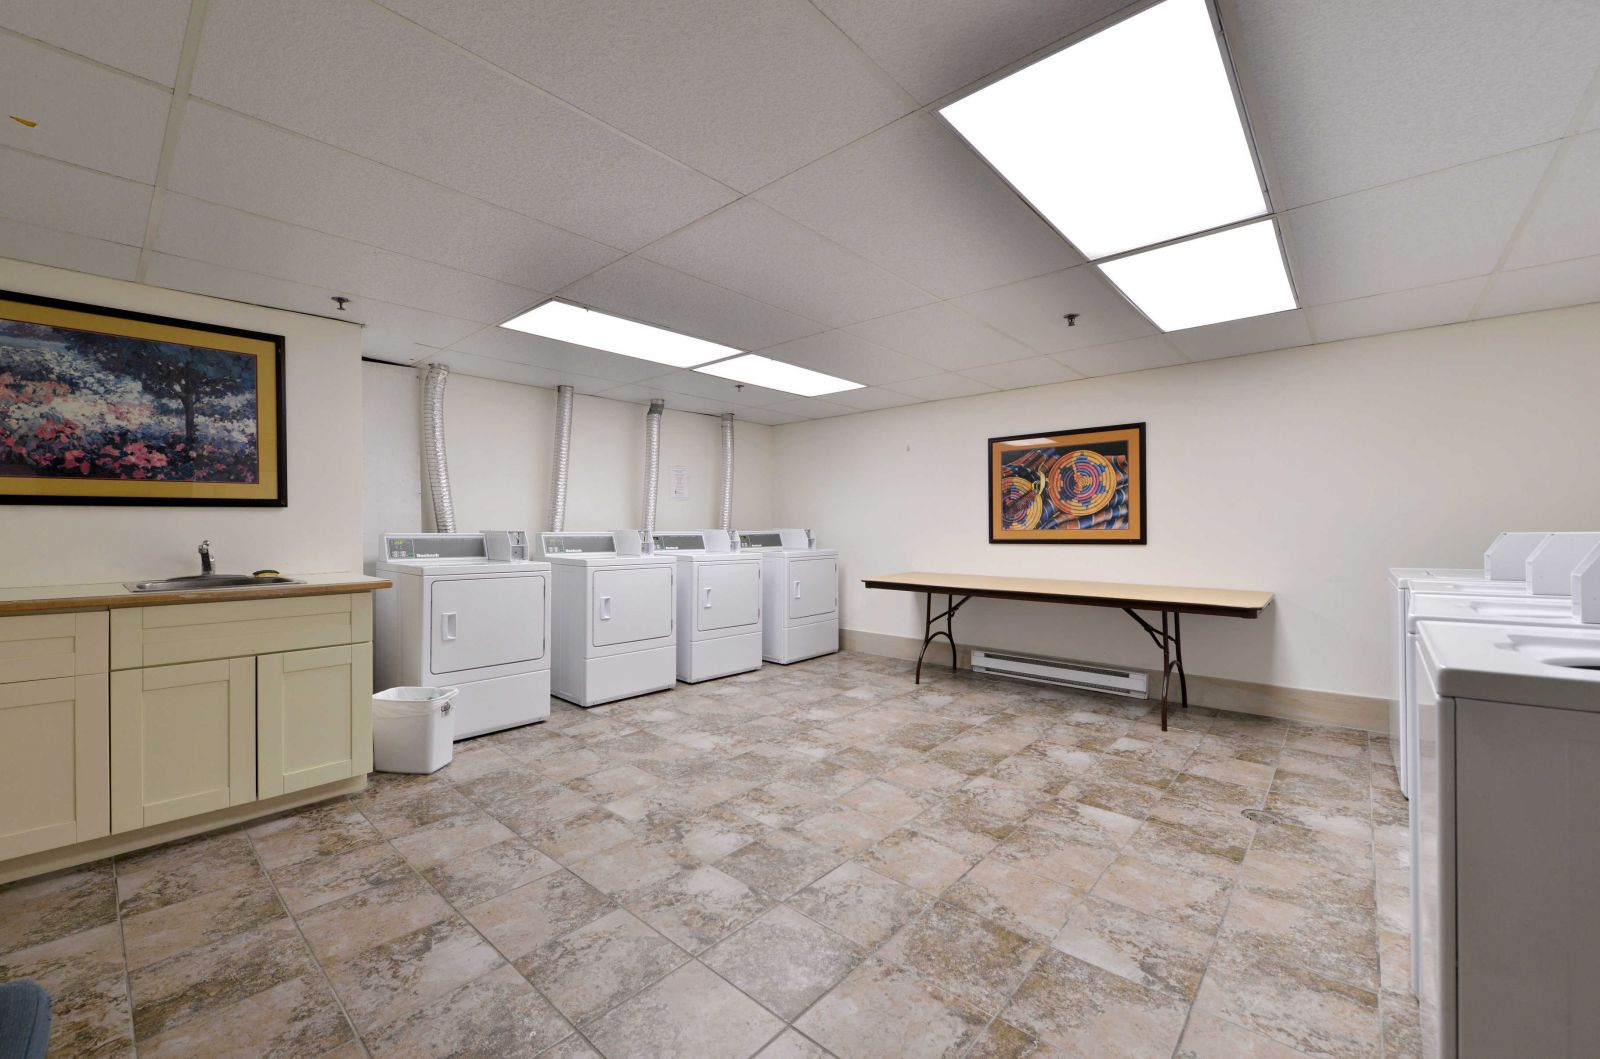 Aspens Lodge laundry facility